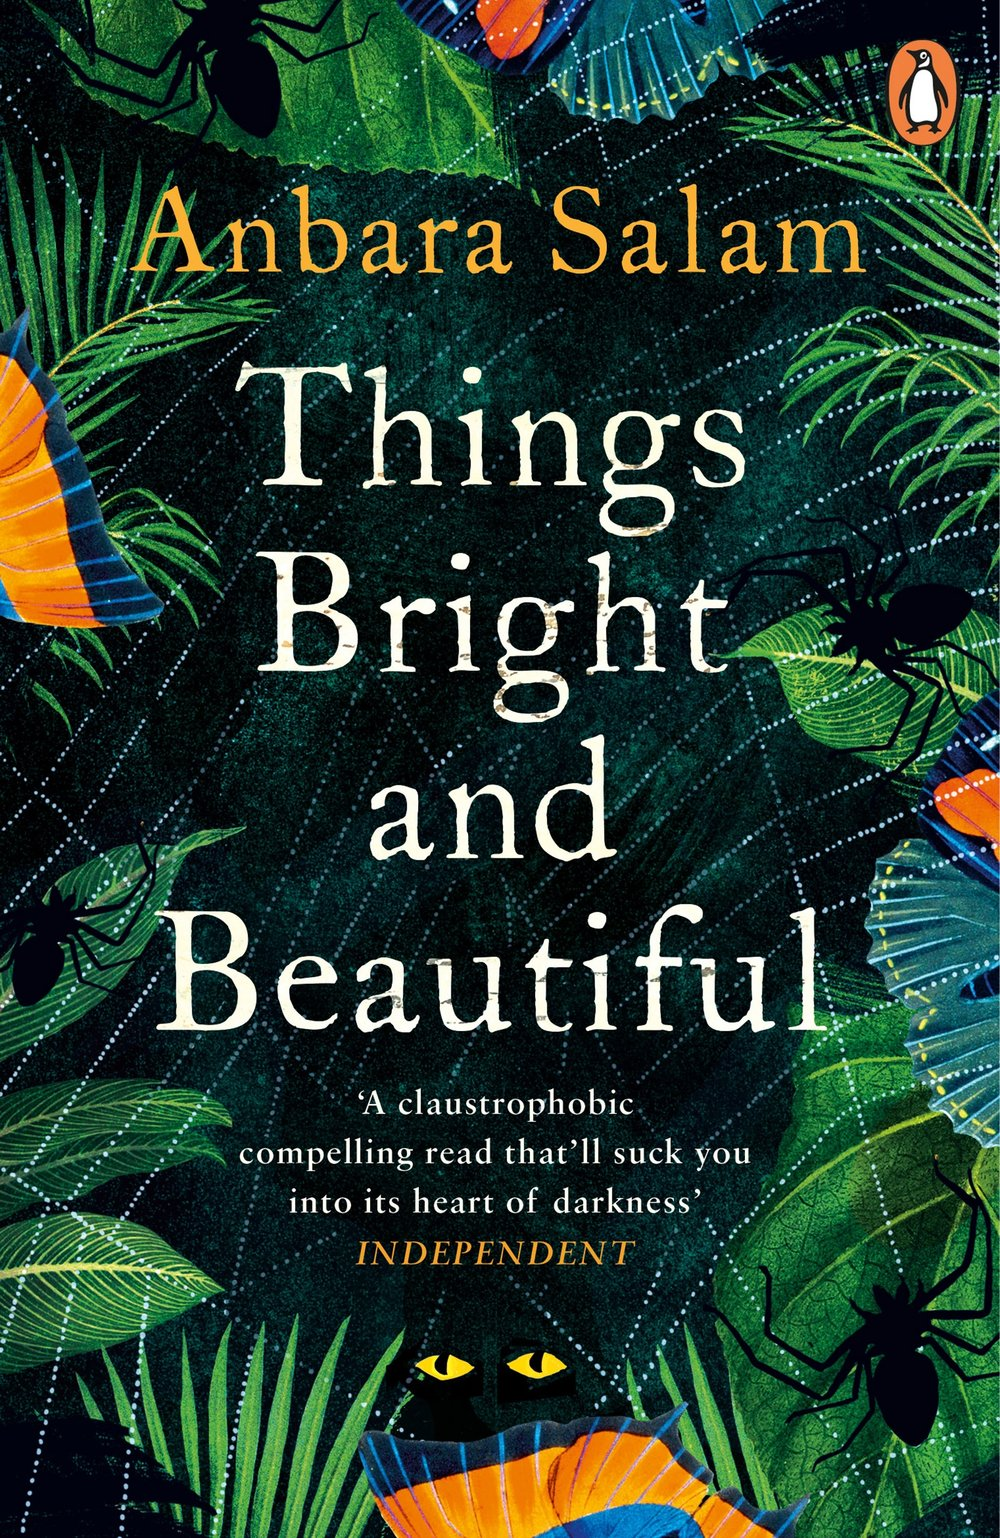 THINGS BRIGHT AND BEAUTIFUL  Literary, 277 pages Fig Tree, April 2018  When Bea Hanlon follows her preacher husband Max to a remote island in the Pacific, she soon sees that their mission will bring anything but salvation. Past the confines of their stuffy little house, amidst the damp and the dust and the sweltering heat, rumours are spreading of devil chasers who roam the island on the hunt for evil spirits. And then there are the noises from the church at night.  Yet, to the amusement of the locals and the bafflement of her husband, Bea gradually adapts to life on the island. But with the dreadful events heralded by the arrival of an unexpected, wildly irritating and always-humming house guest, Advent Island becomes a hostile place once again. And before long, trapped in the jungle and in the growing fever of her husband's insanity, Bea finds herself fighting for her freedom, and for her life.